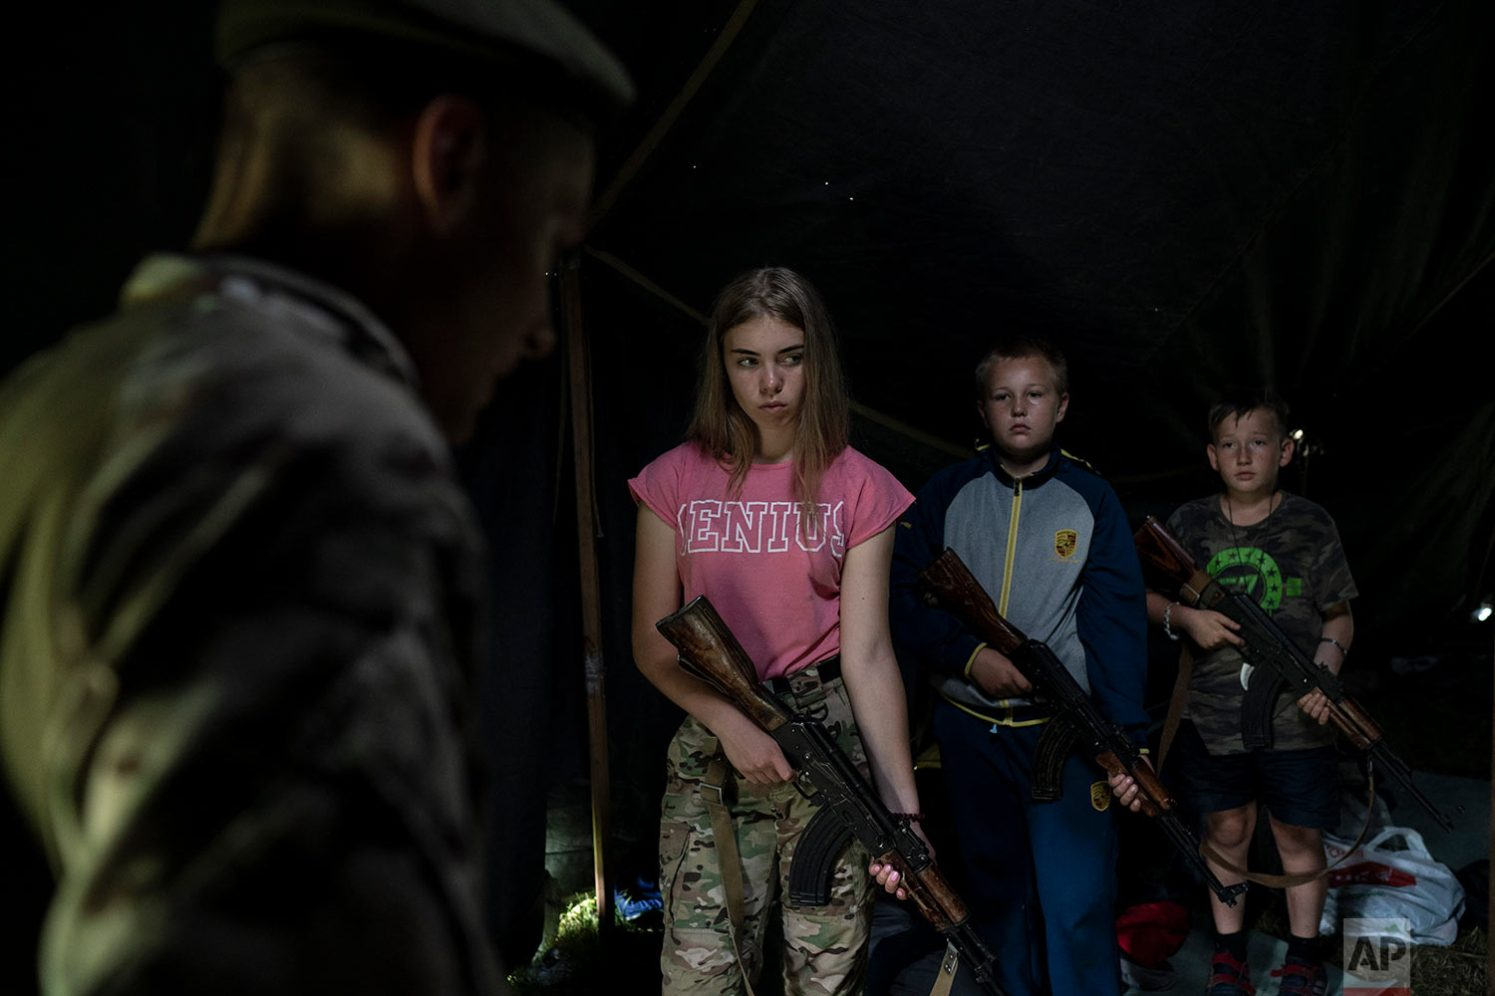 """Participants of the """"Temper of will"""" summer camp, organized by the nationalist Svoboda party, hold their AK-47 riffles as they receive instructions during a tactical exercise on July 28, 2018, in a village near Ternopil, Ukraine. Campers as young as 8 years old practice using assault rifles. They are taught to shoot to kill Russians and their sympathizers. (AP Photo/Felipe Dana)"""